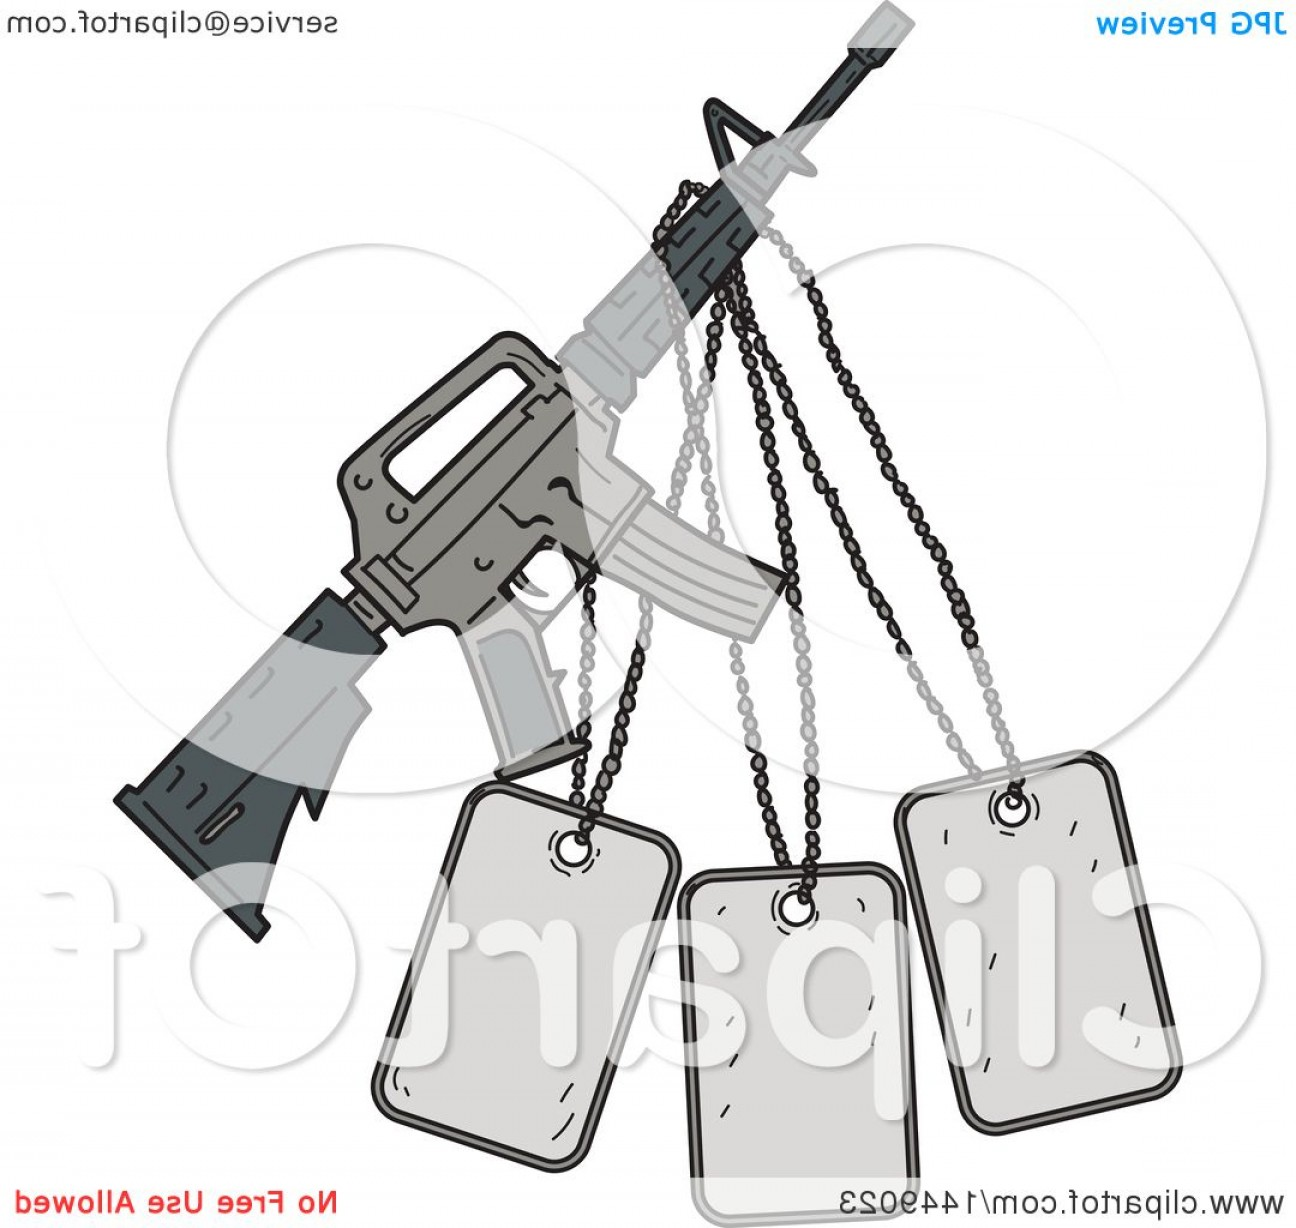 M4 Gun Vector: Drawing Sketch Styled M Rifle And Dog Tags